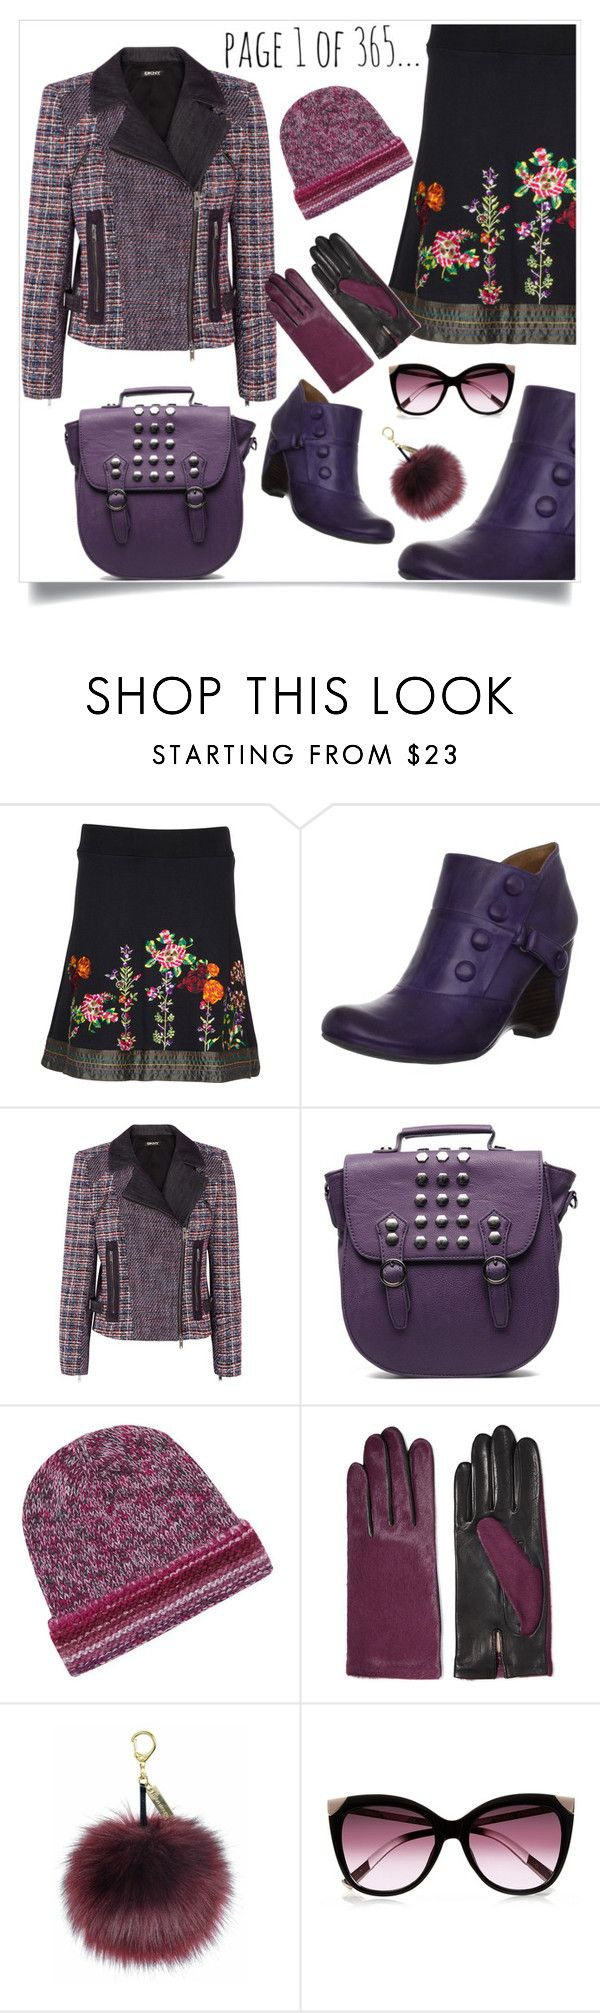 """""""1-st january"""" by hani-bgd ❤ liked on Polyvore featuring Desigual, Miz Mooz, DKNY, Steve Madden, Missoni, AGNELLE, Helen Moore, River Island and Winter"""